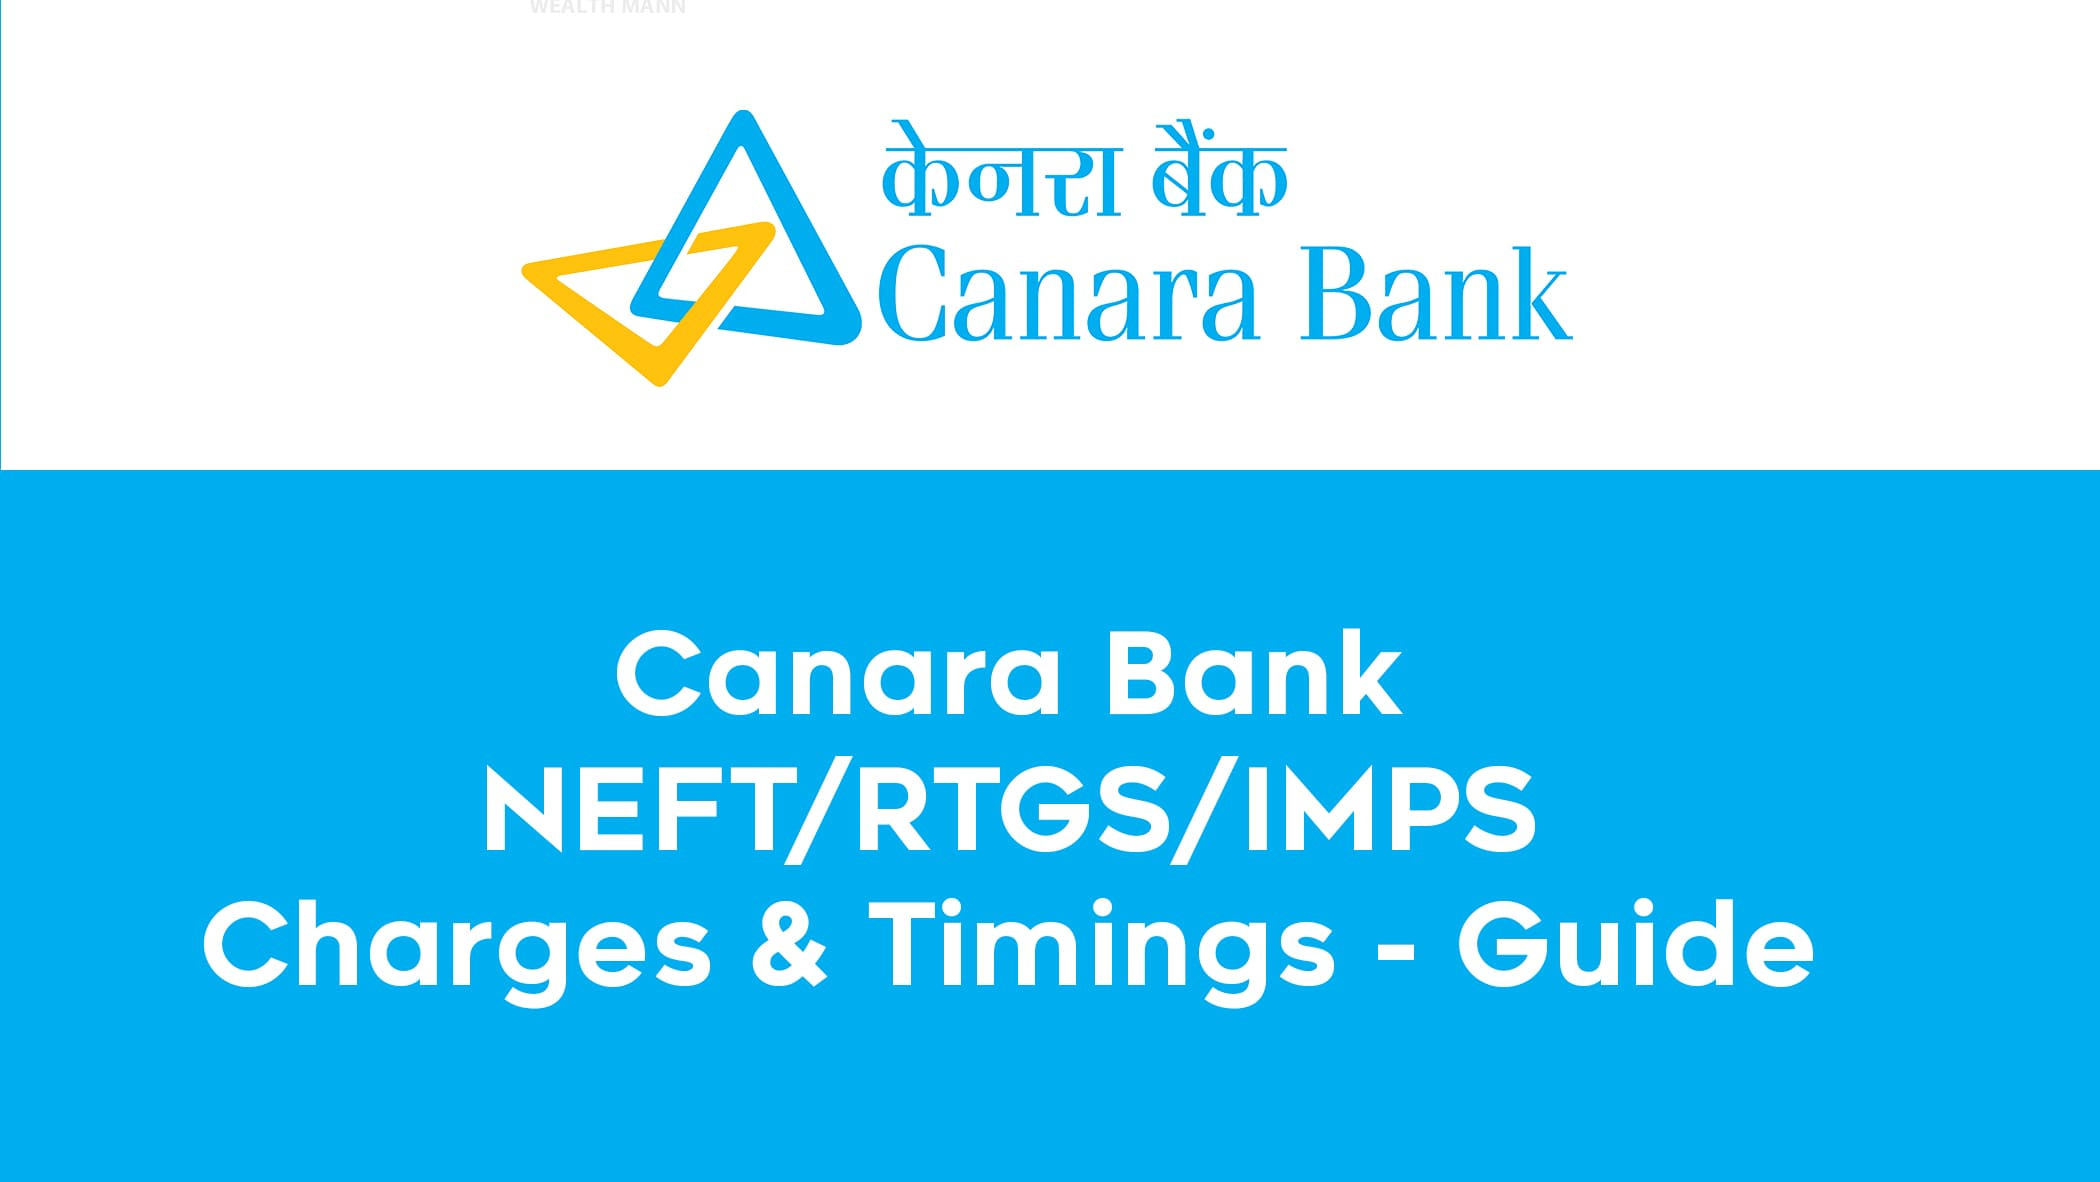 Canara Bank NEFT/RTGS/IMPS Charges & Timings - Guide 1